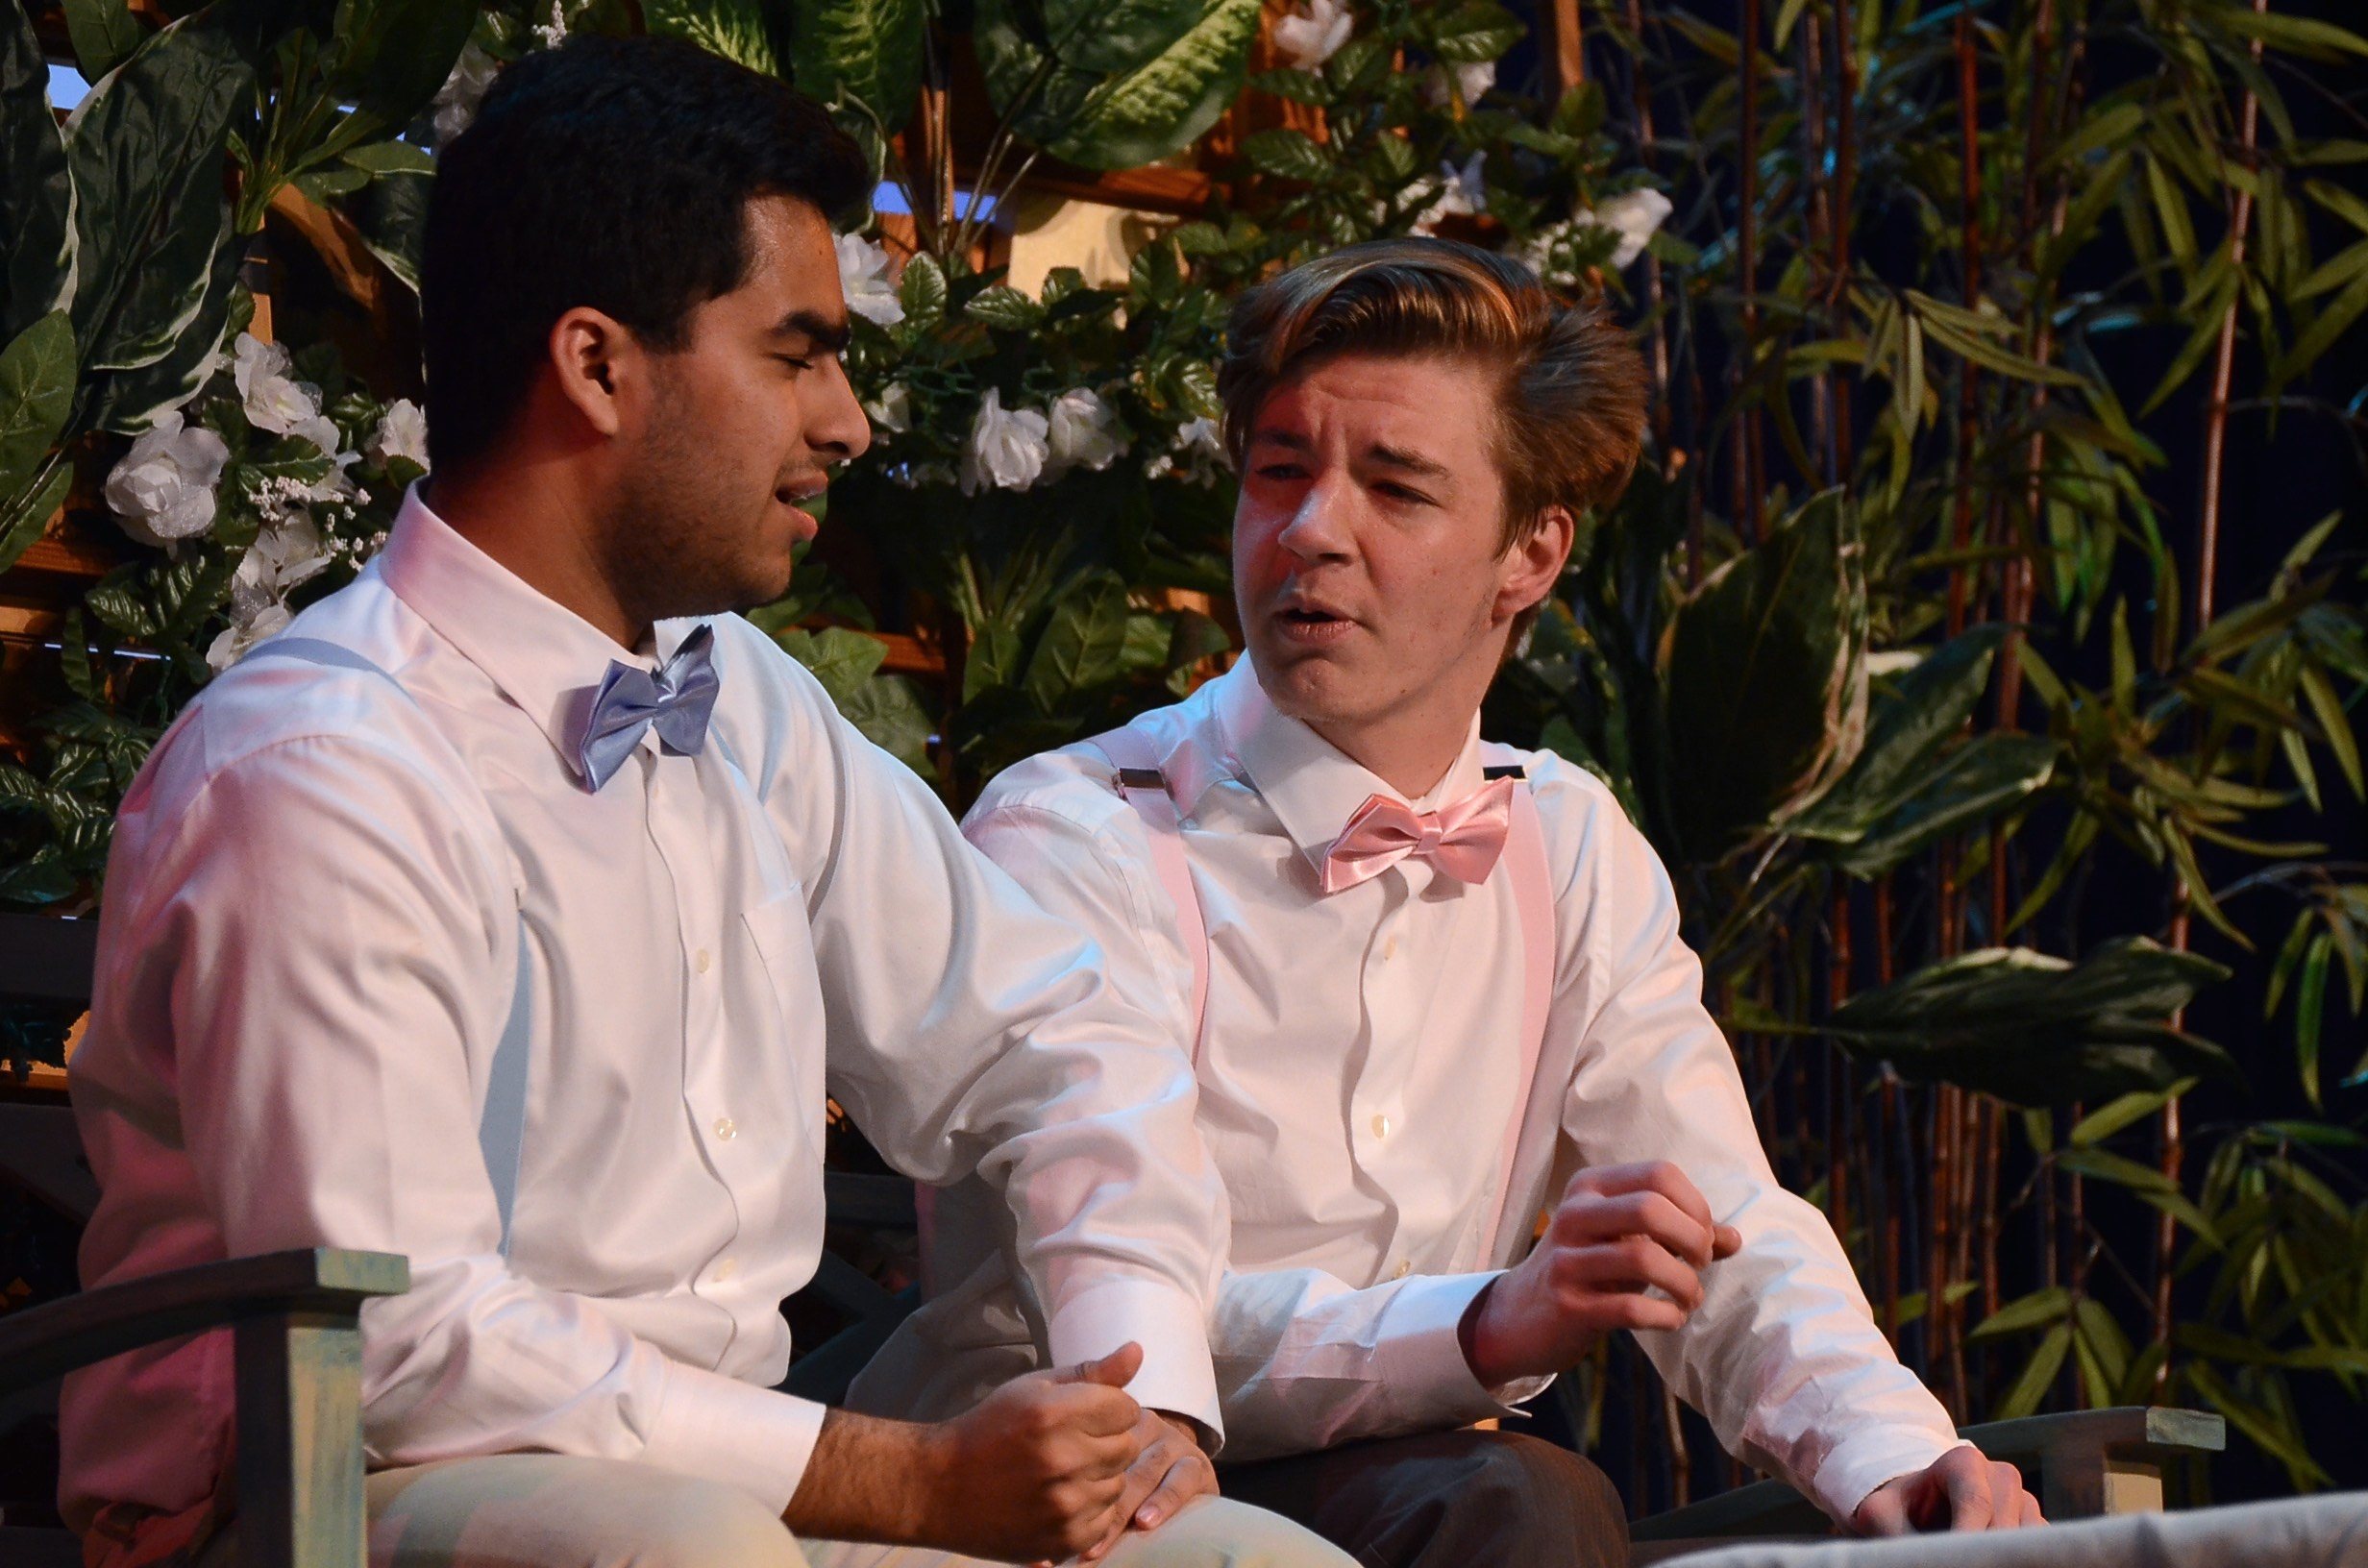 Aditya+Dhar+%2812%29+and+Brandon+Stoll+%2812%29+have+a+conversation+while+sitting+on+a+bench+in+%22The+Importance+of+Being+Earnest.%22+The+performance+of+this+play+was+directed+by+Sana+Aladin+%2812%29.